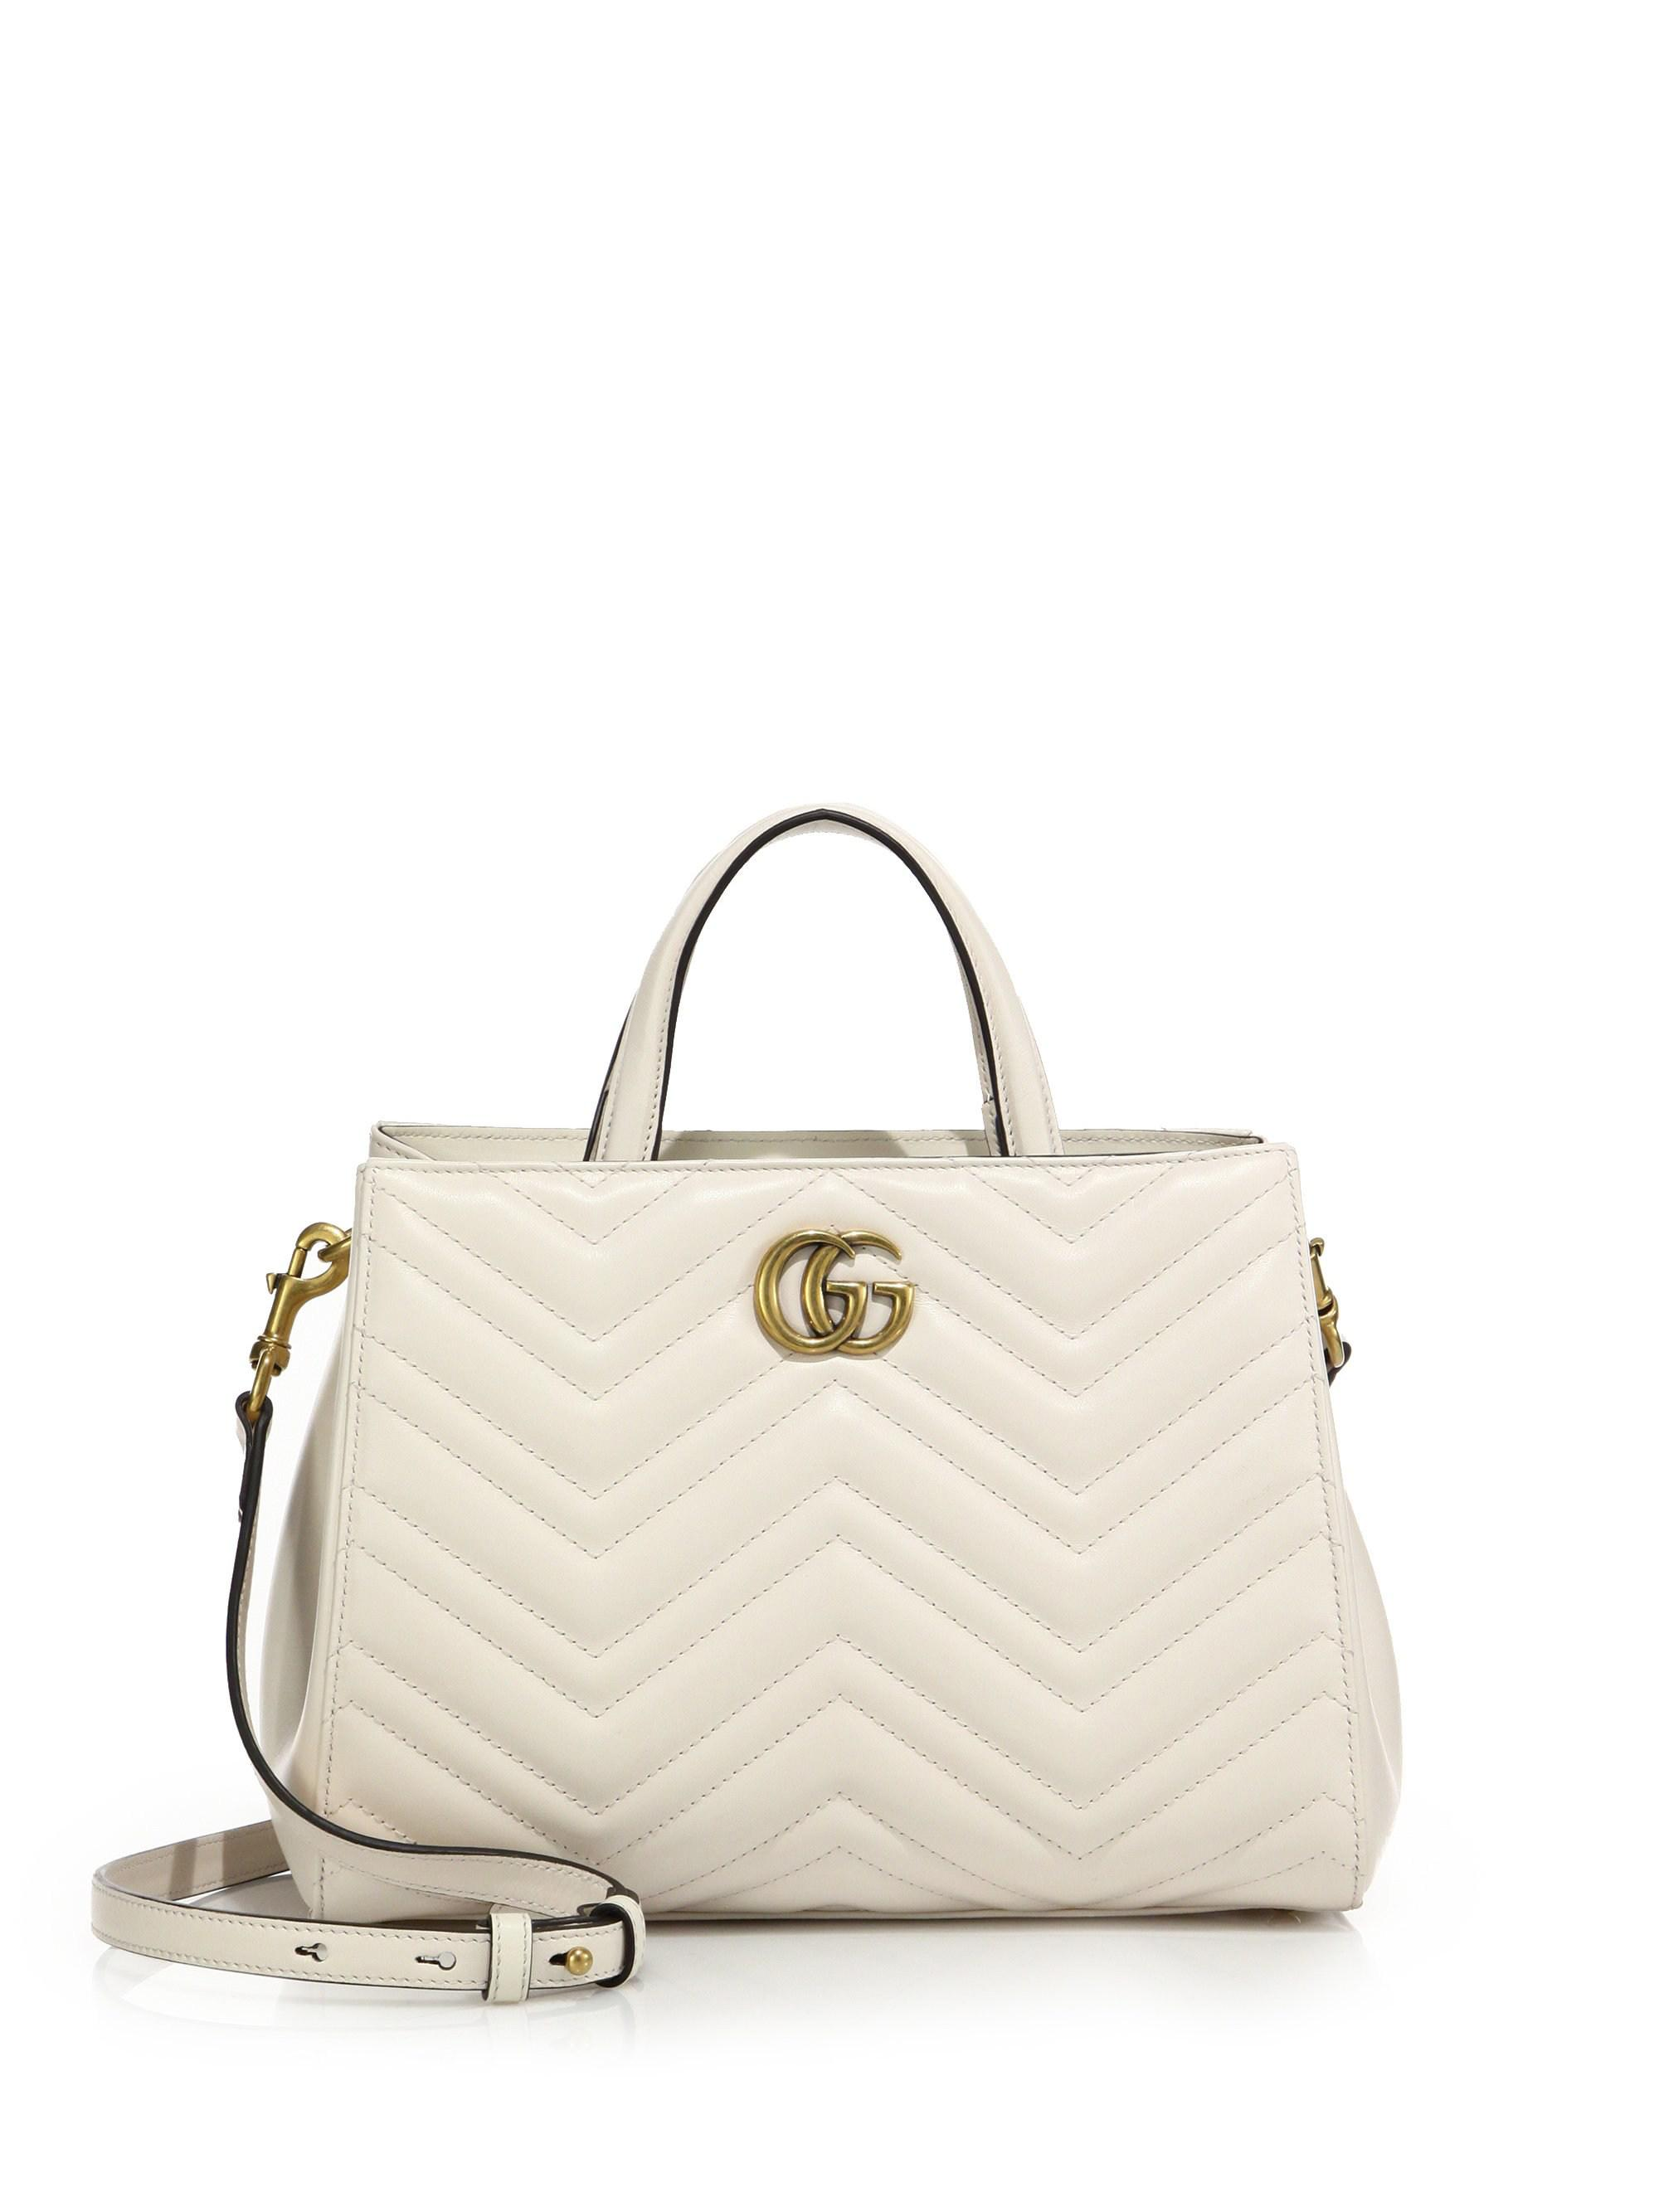 cae57995aa184 Lyst - Gucci GG Marmont Matelasse Leather Top-Handle Tote in White